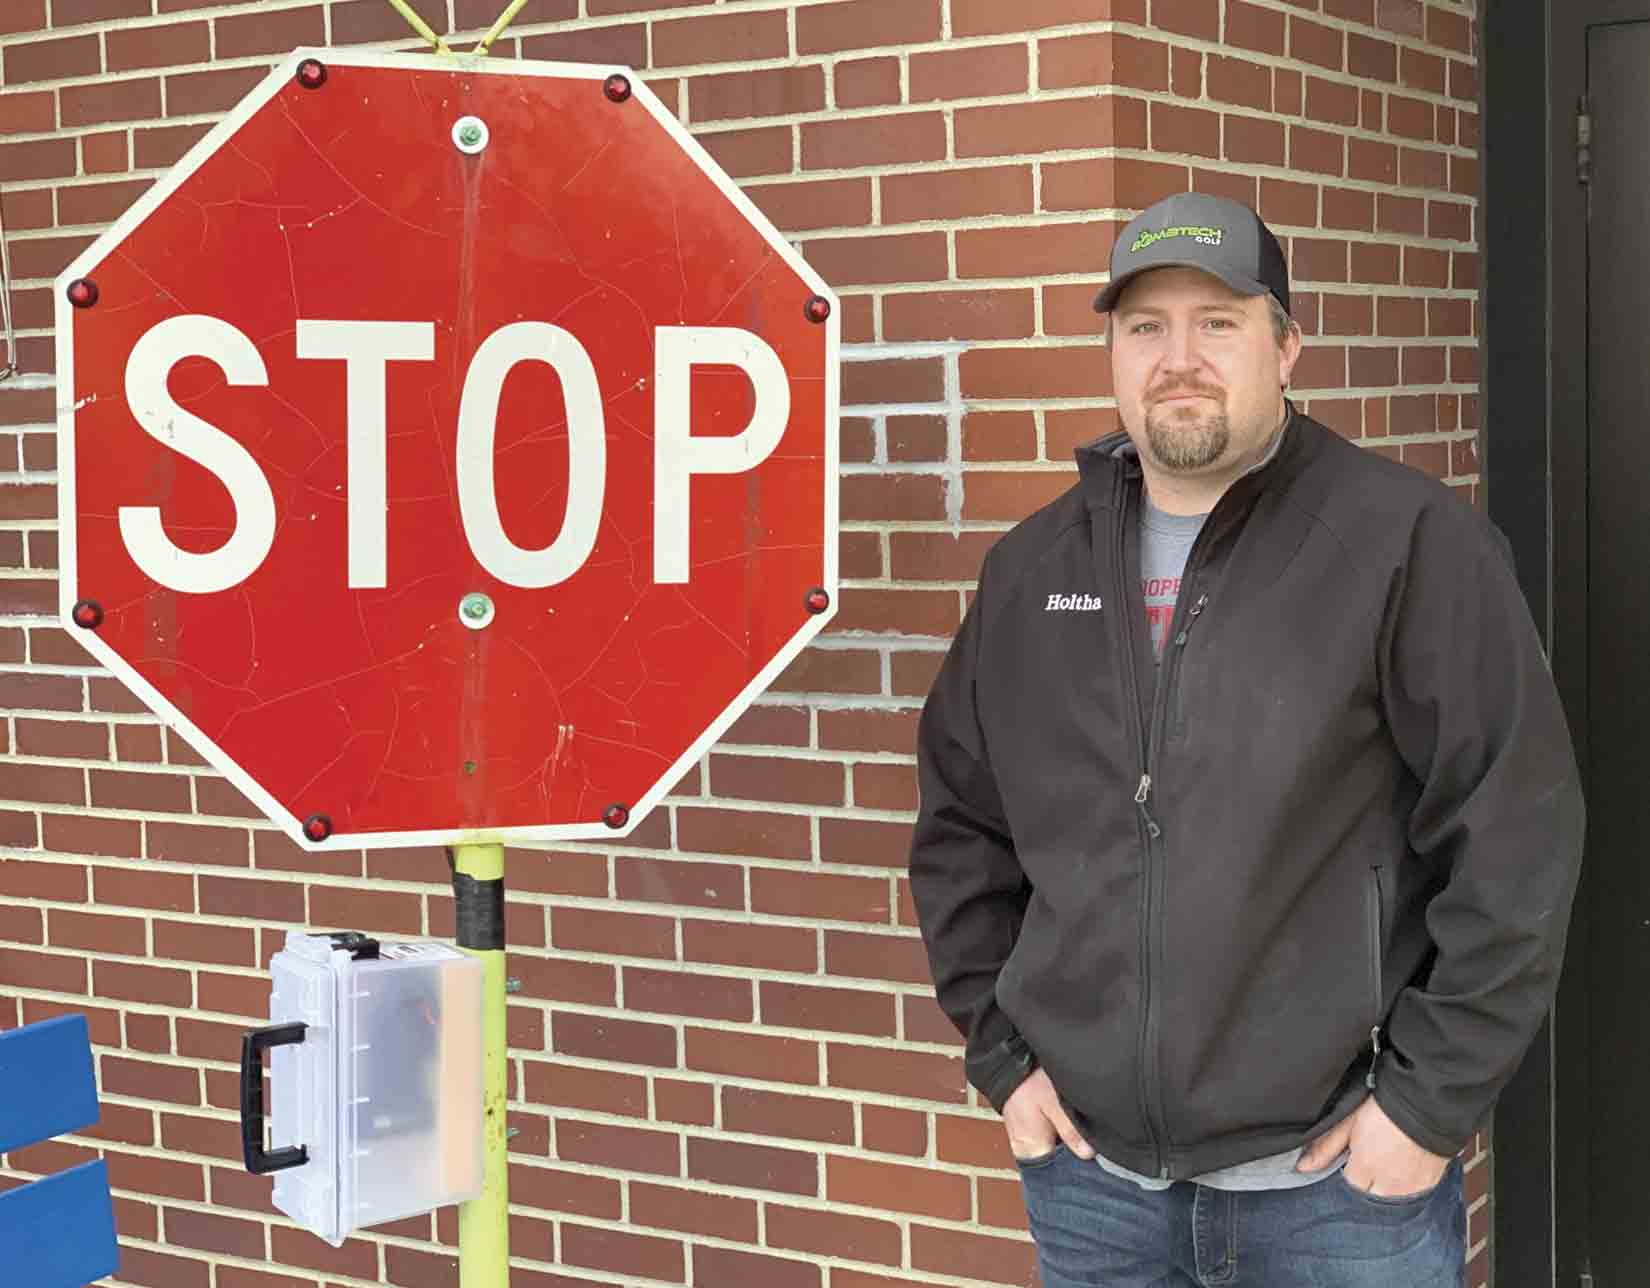 Thanks to the ingenuity of Ossian city council member Mitch Holthaus, the community was able to add a new lighted stop sign at the Highway 52 crossing near St. Theresa of Calcutta School. The City looked at purchasing a similar sign, but Holthaus was able to design and build his own version at a...